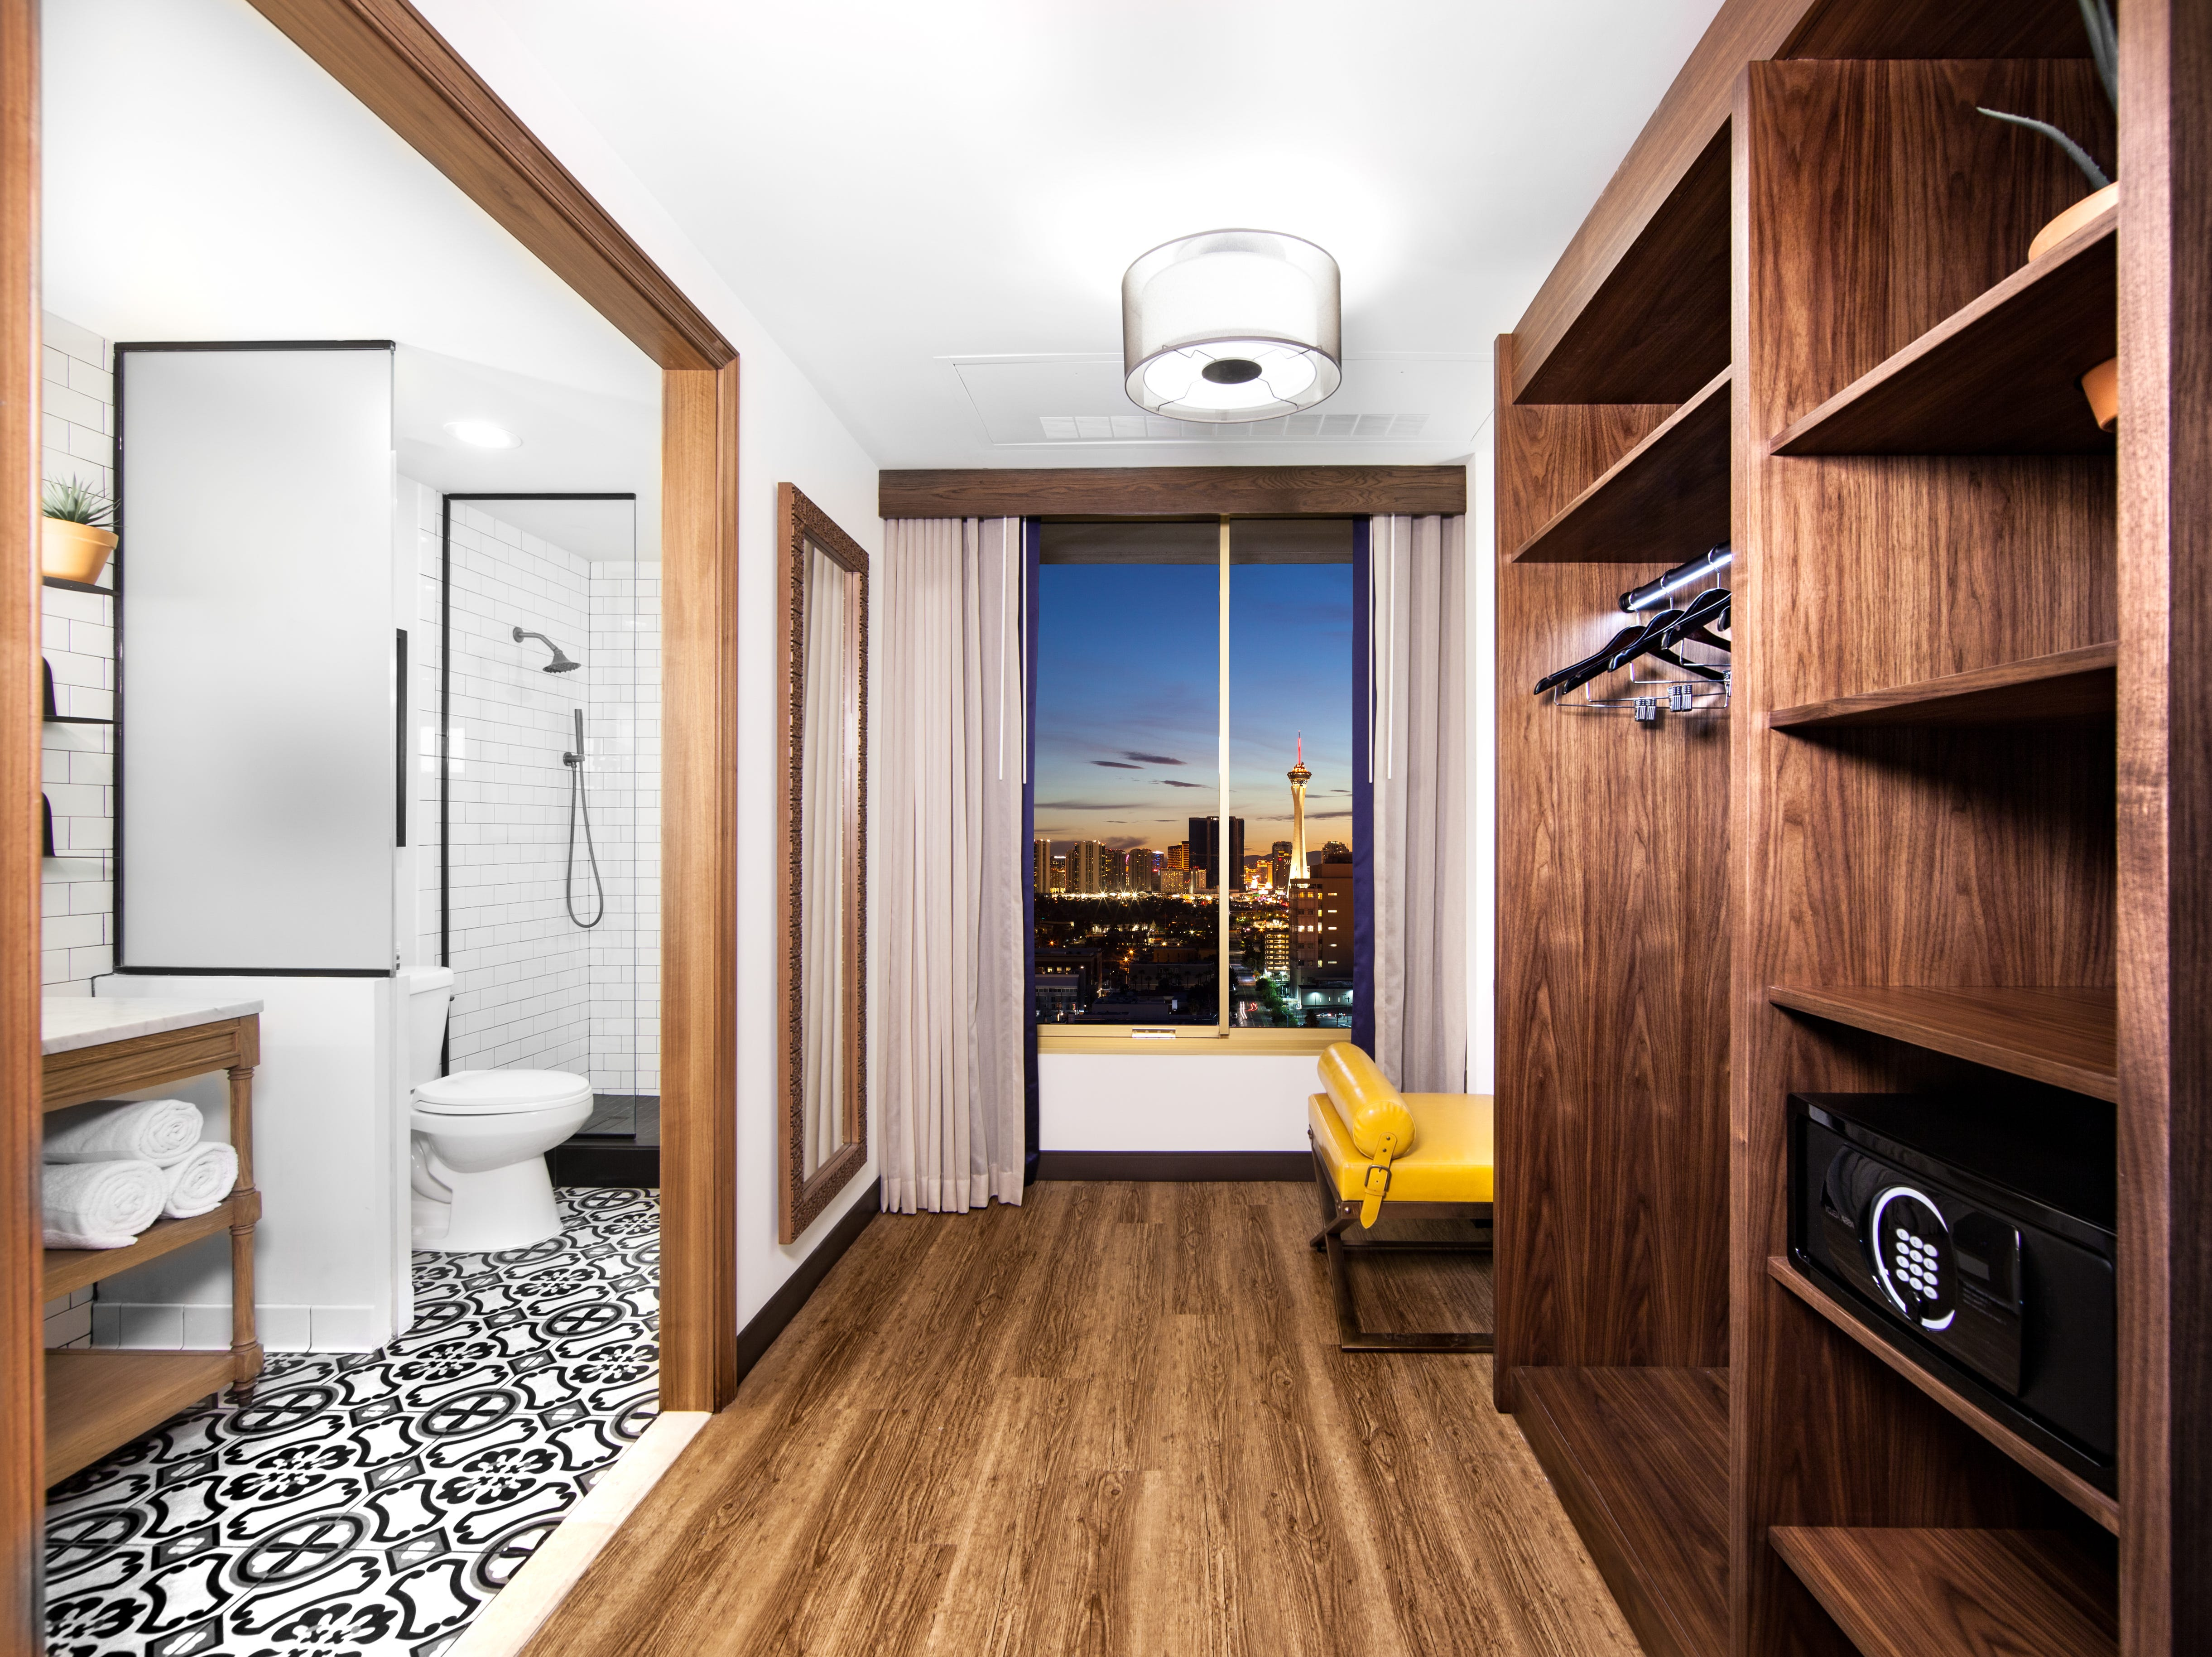 The redesigned rooms now have black and white floor tiles, traditional-style rugs, carved wood details and modern accent furniture.